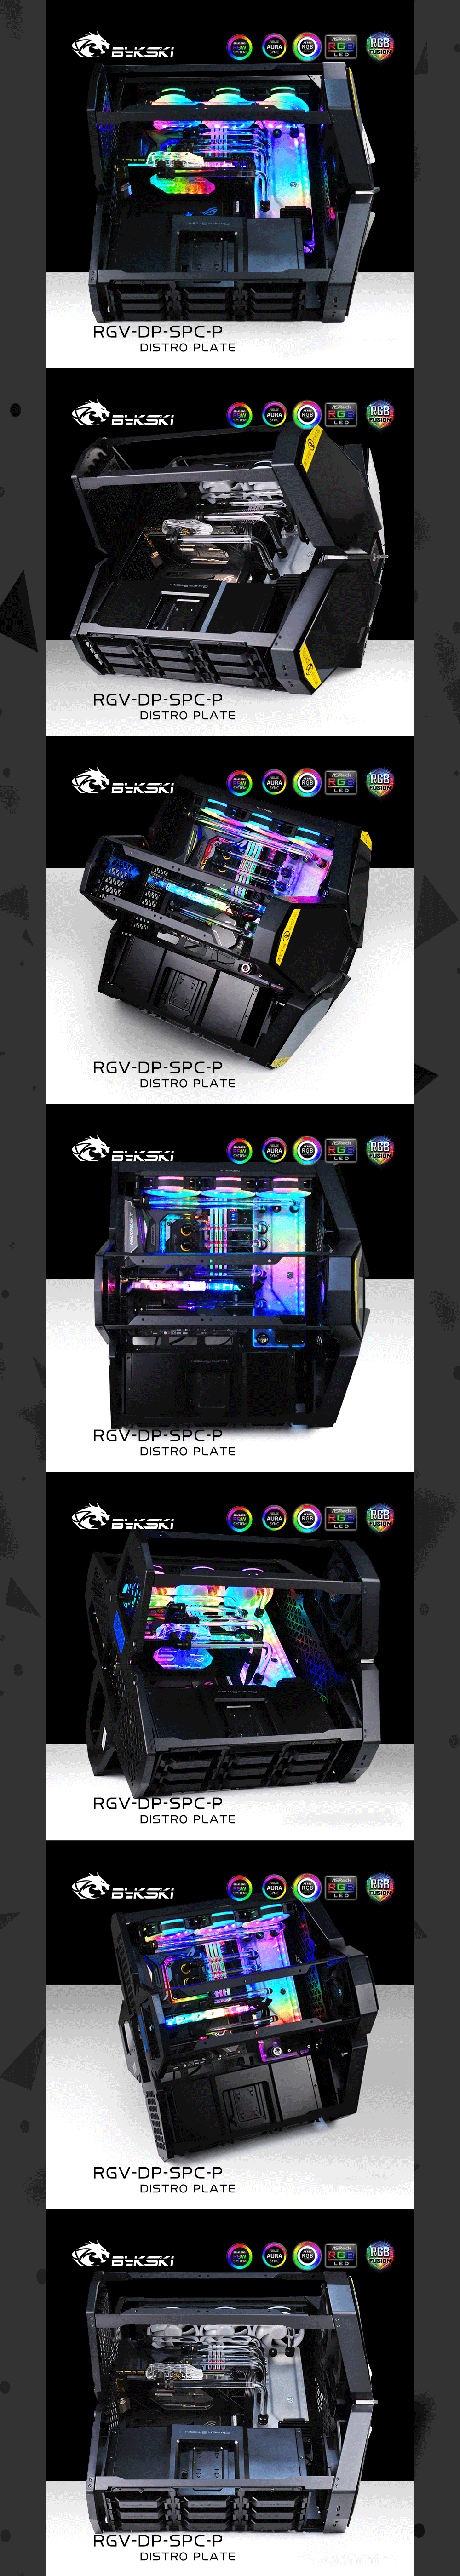 Bykski RGV-DP-SPC, Waterway Boards Kit For DeepCool Quadstellar Case, RBW Waterway Board CPU/GPU Water Block Program Kit Bykski RGV-DP-SPC, Waterway Boards Kit For DeepCool Quadstellar Case, RBW Waterway Board CPU/GPU Water Block Program Kit CPU GPU Water Block For Deepcool Quadstellar Case,Bykski RGV-DP-SPC,CPU GPU Water Block Kit